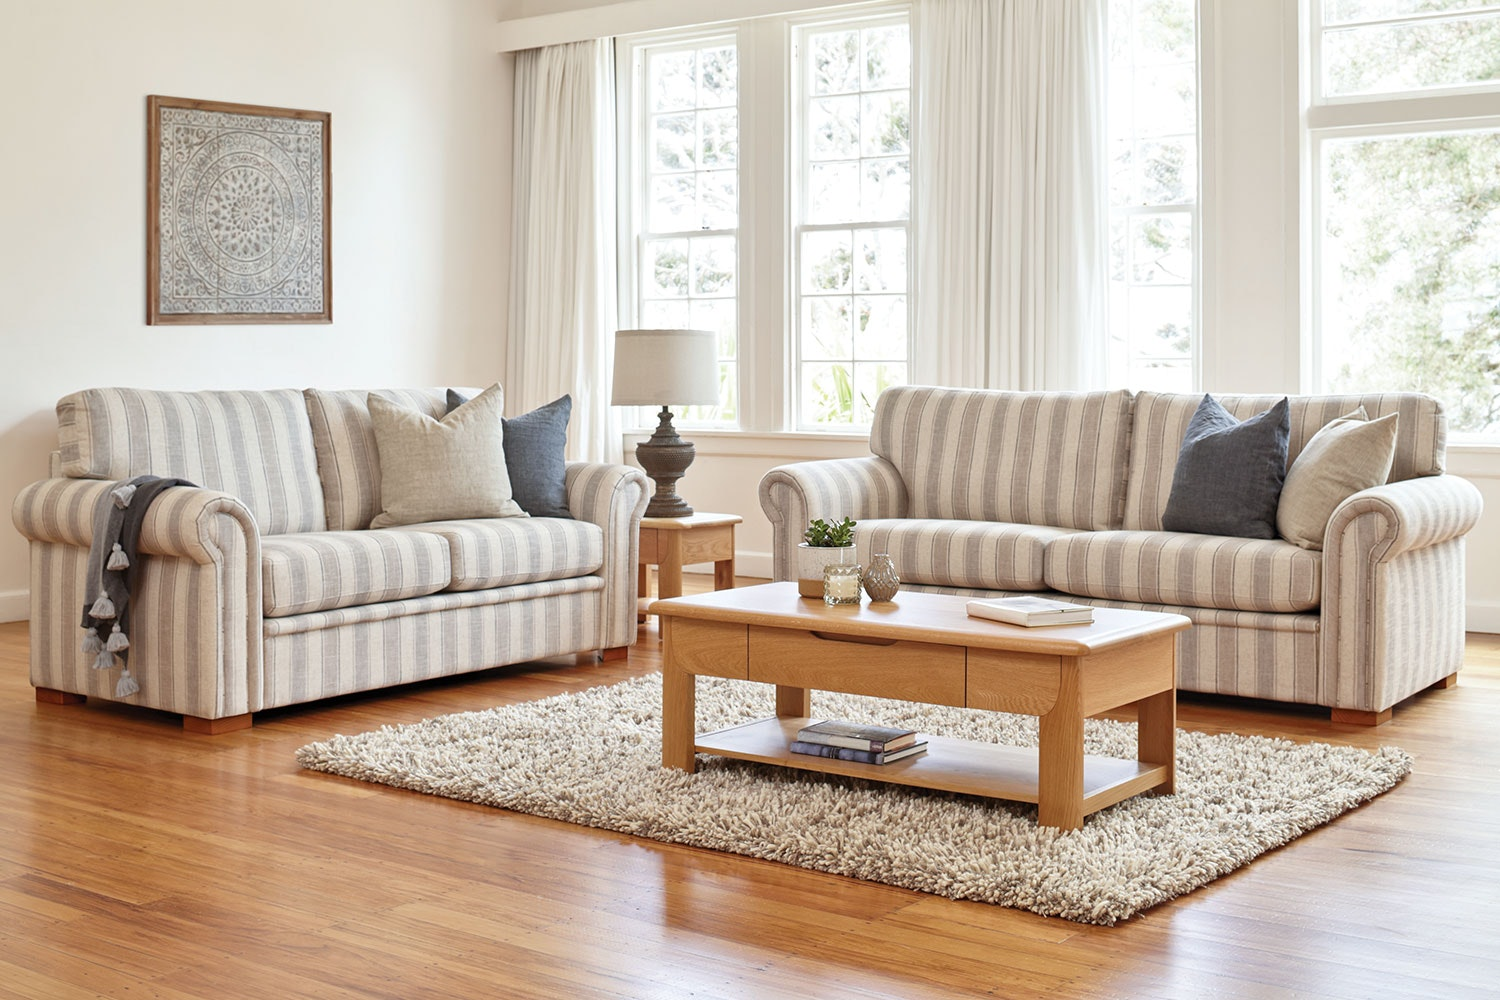 Libby 2 Piece Fabric Lounge Suite by Evan John Philp